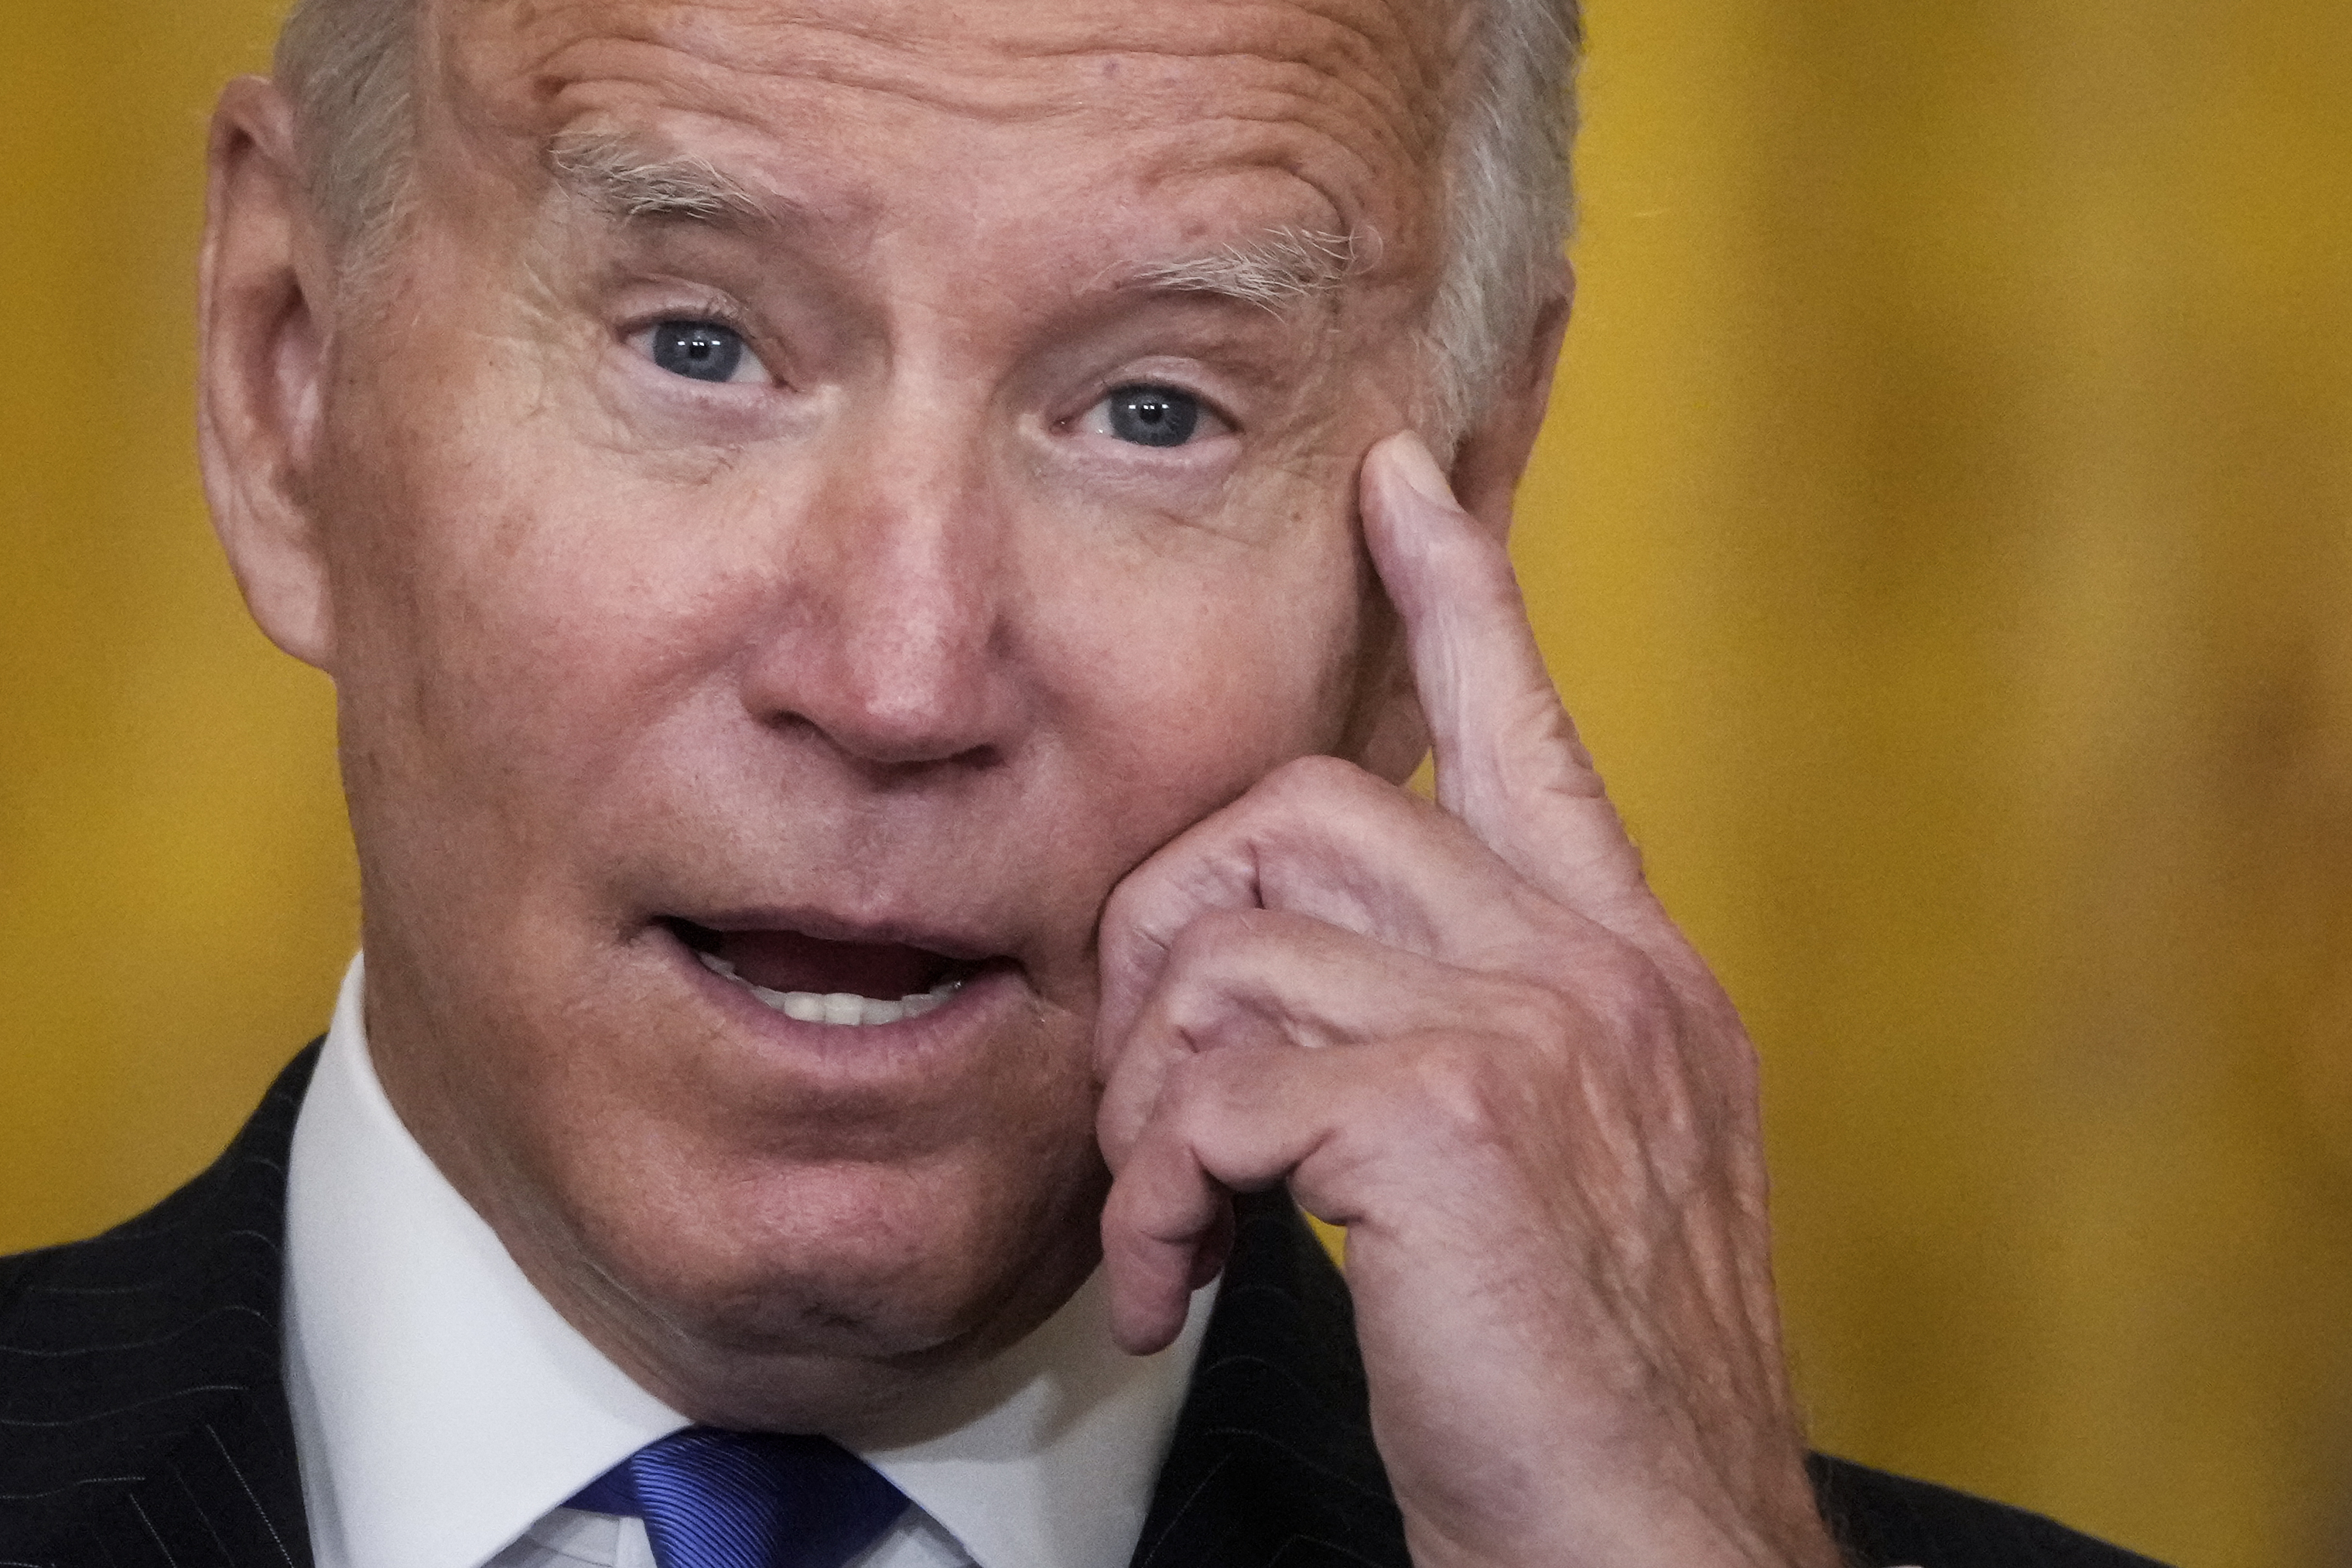 President Joe Biden in closeup with his index finger to his temple.